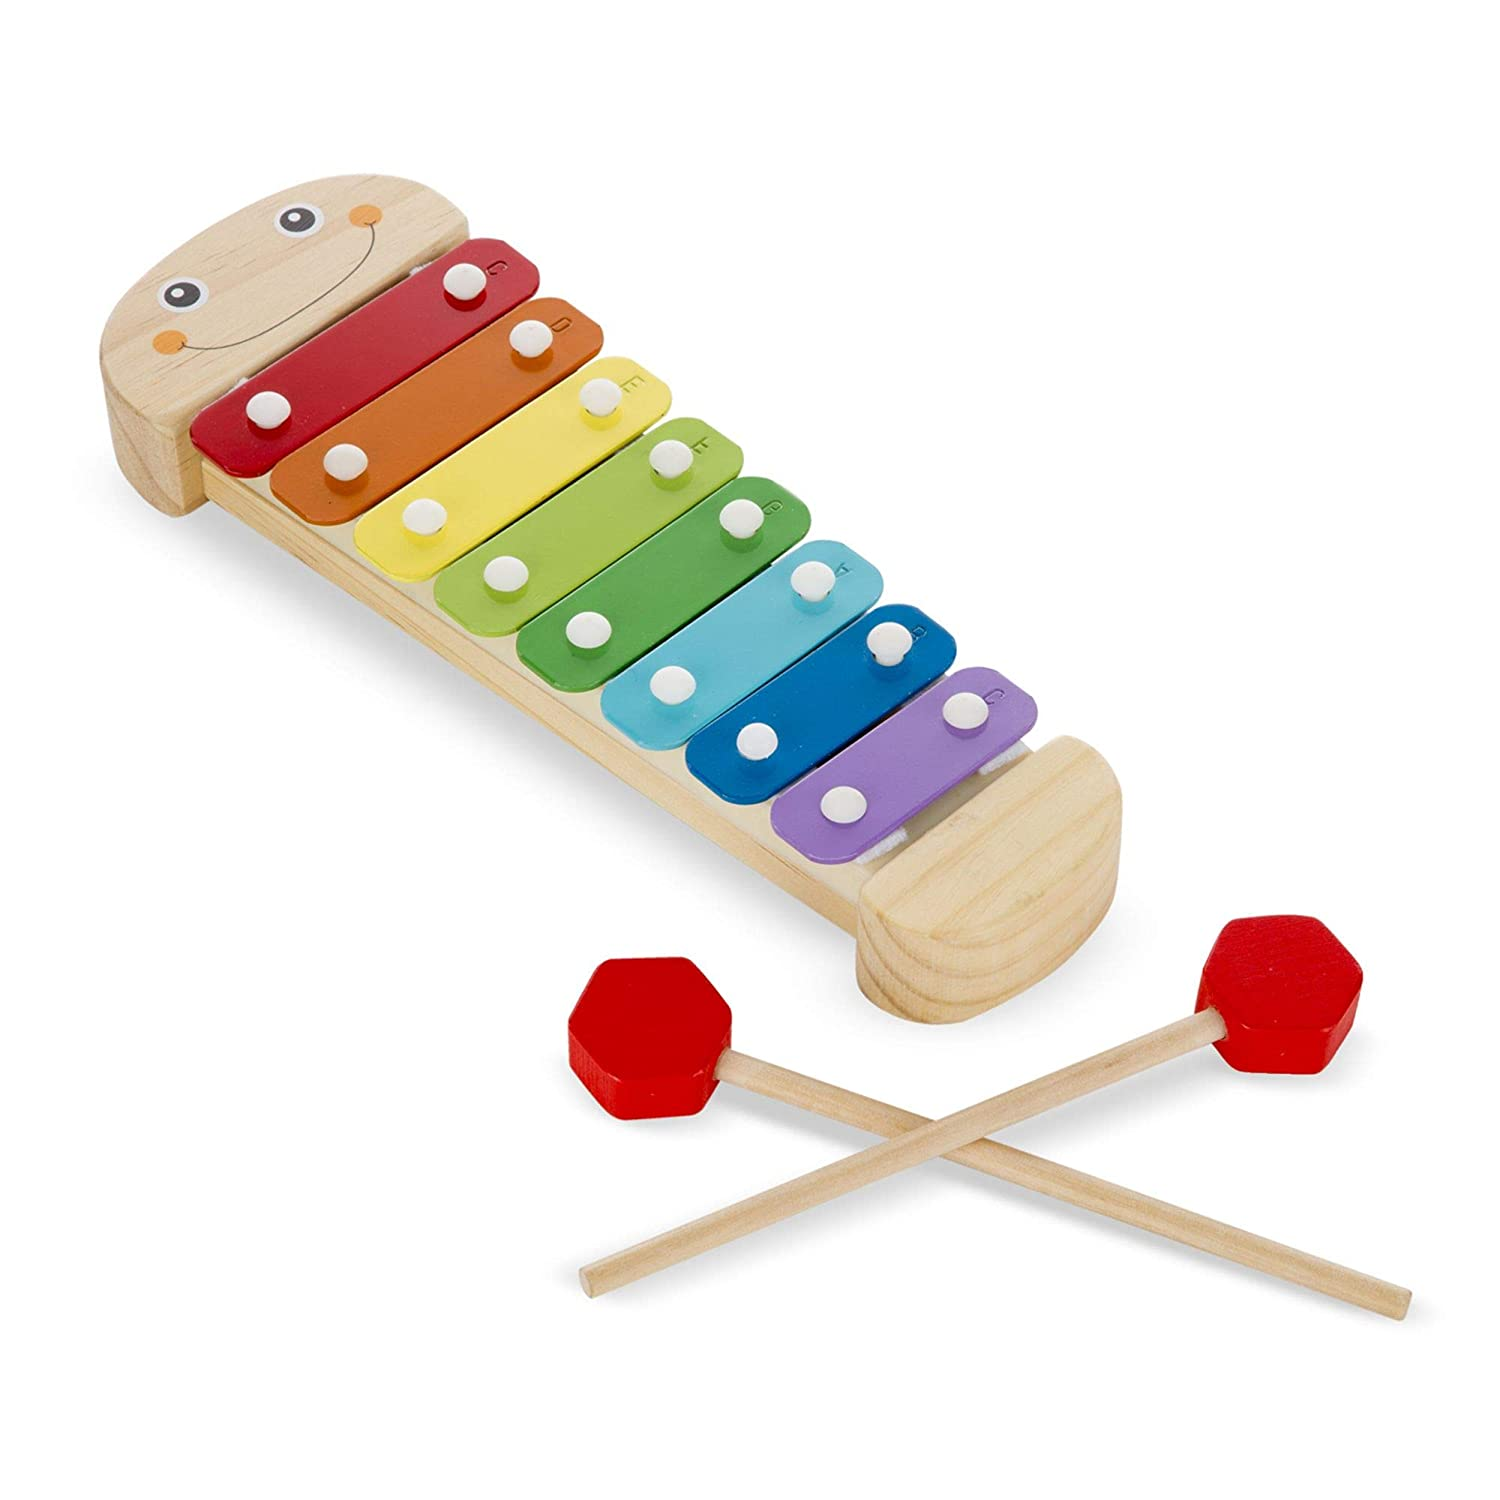 Rainbow-Colored One Octave of Notes 18 H x 6.2 W x 2 L 18 H x 6.2 W x 2 L Melissa and Doug 8964 Melissa /& Doug Caterpillar Xylophone Musical Instruments Self-Storing Wooden Mallets